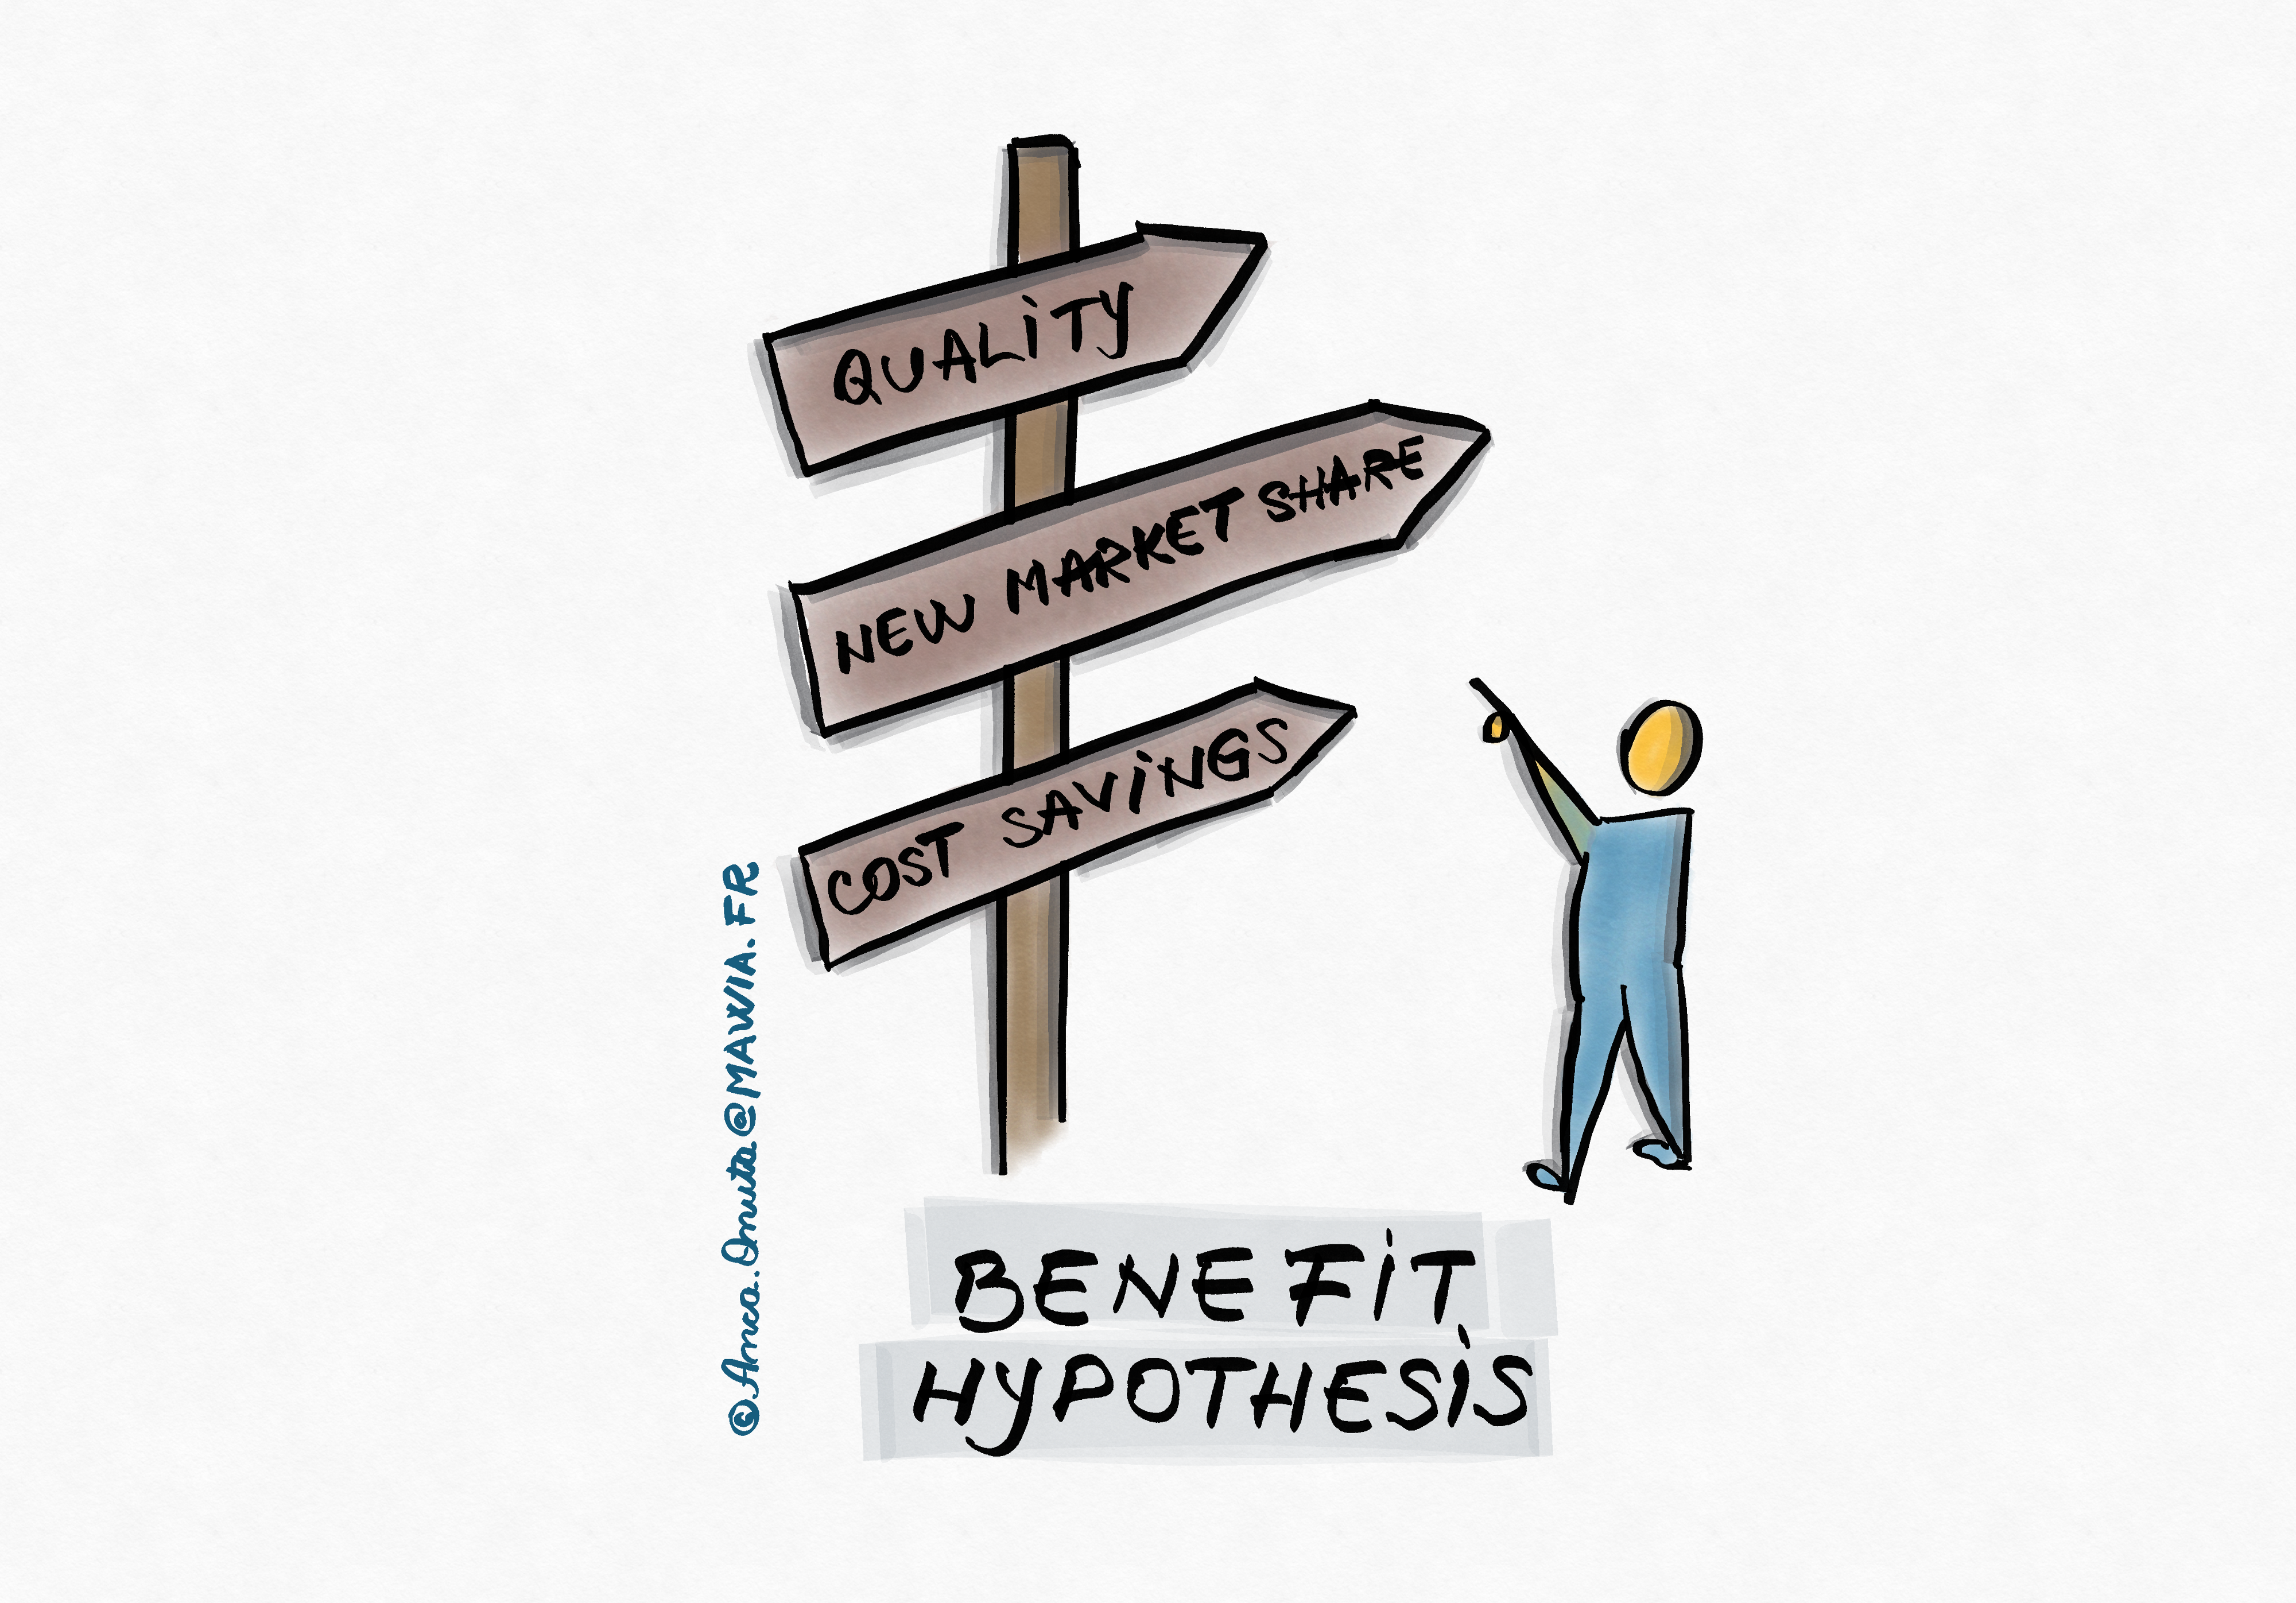 The Product Manager defines the benefit hypothesis of the feature.